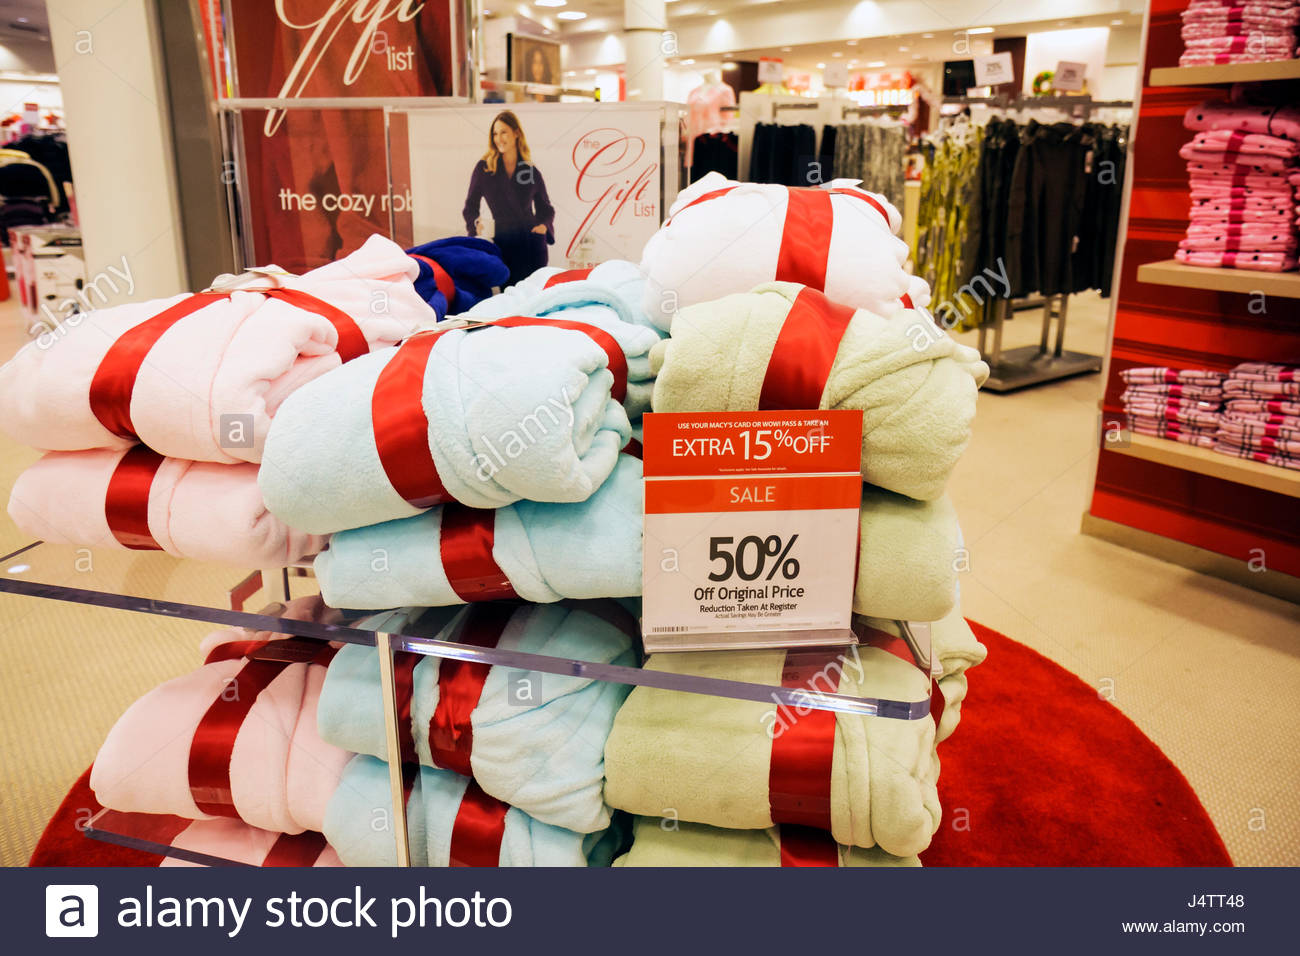 West Palm Beach Florida CityPlace Macy's department store business retail fashion shopping display sleepwear - Stock Image